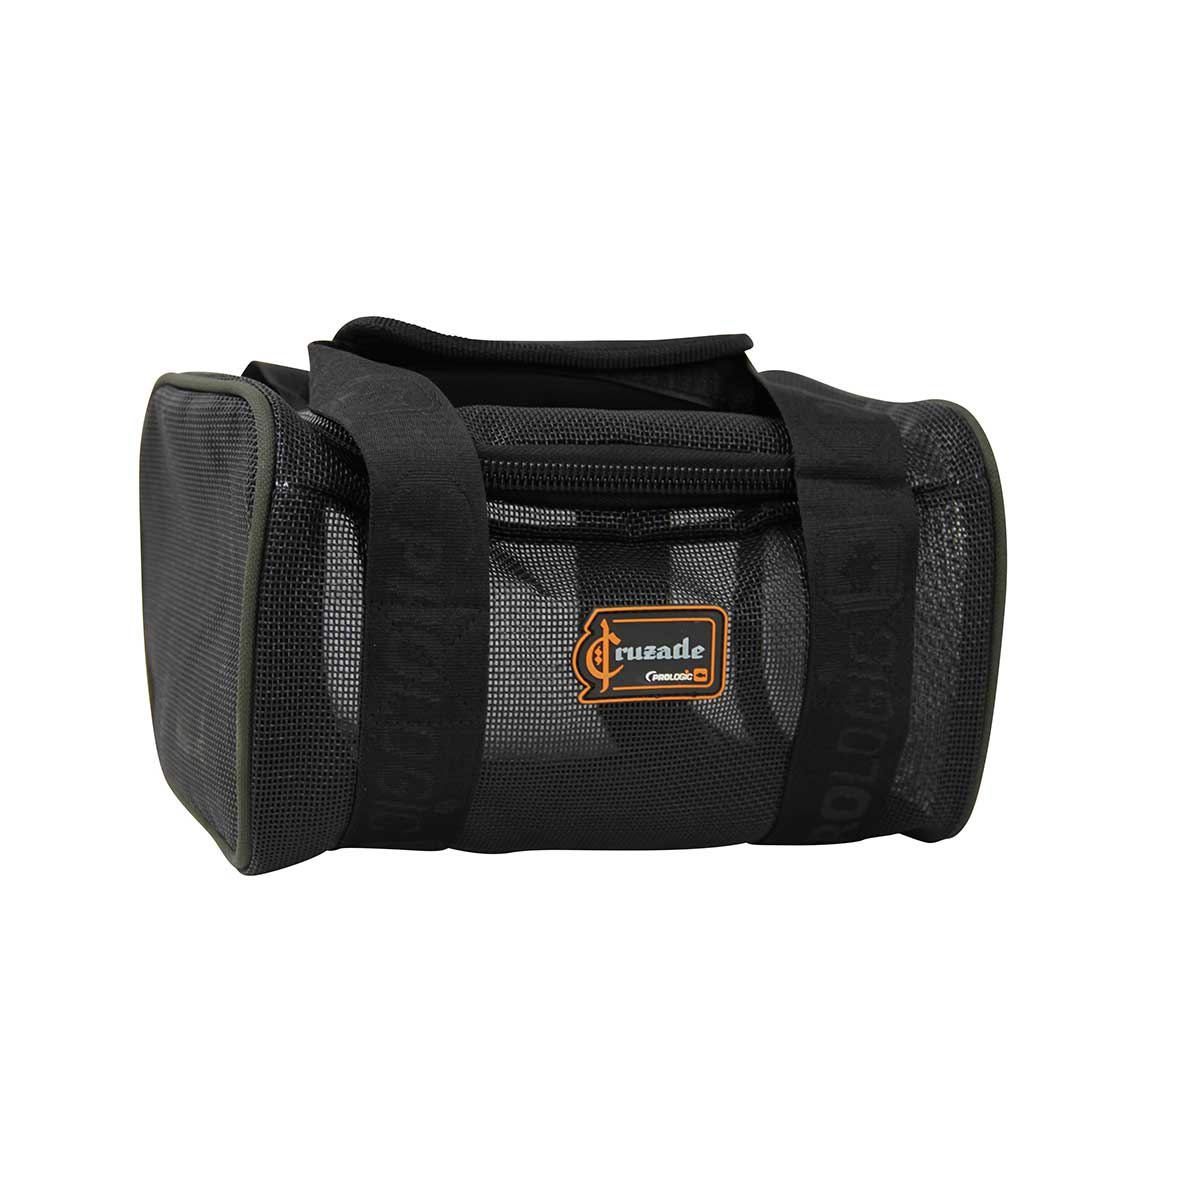 PROLOGIC- CRUZADE BAIT MESH BAG